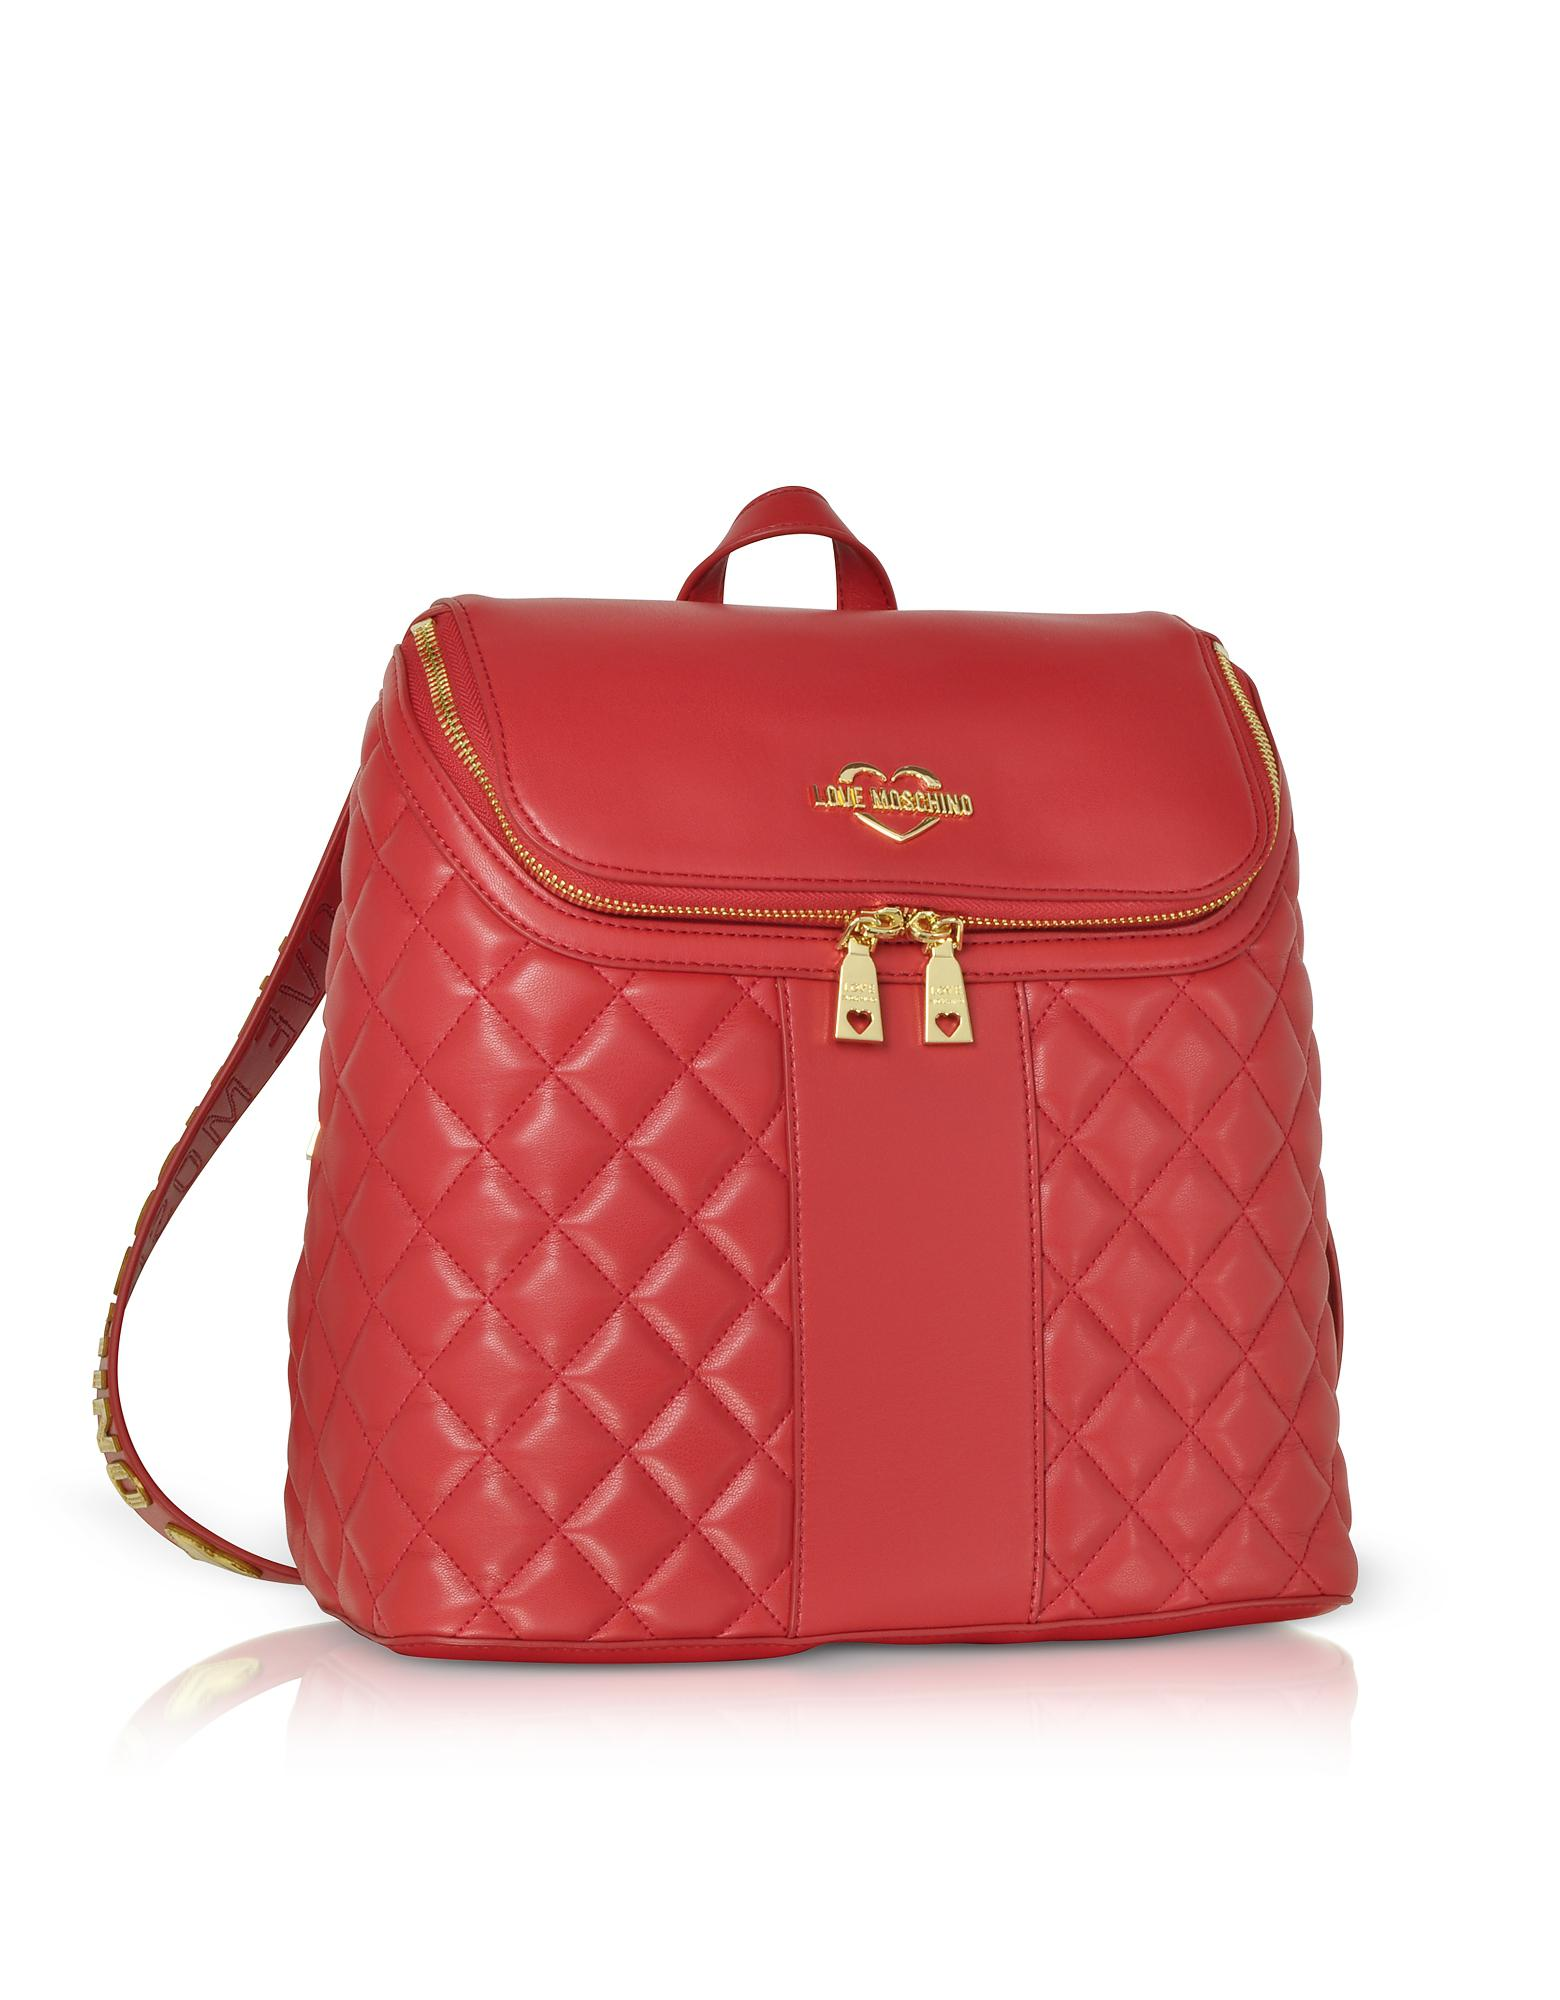 b9ee76158bcd0 Lyst - Love Moschino Quilted Eco Leather Backpack in Red